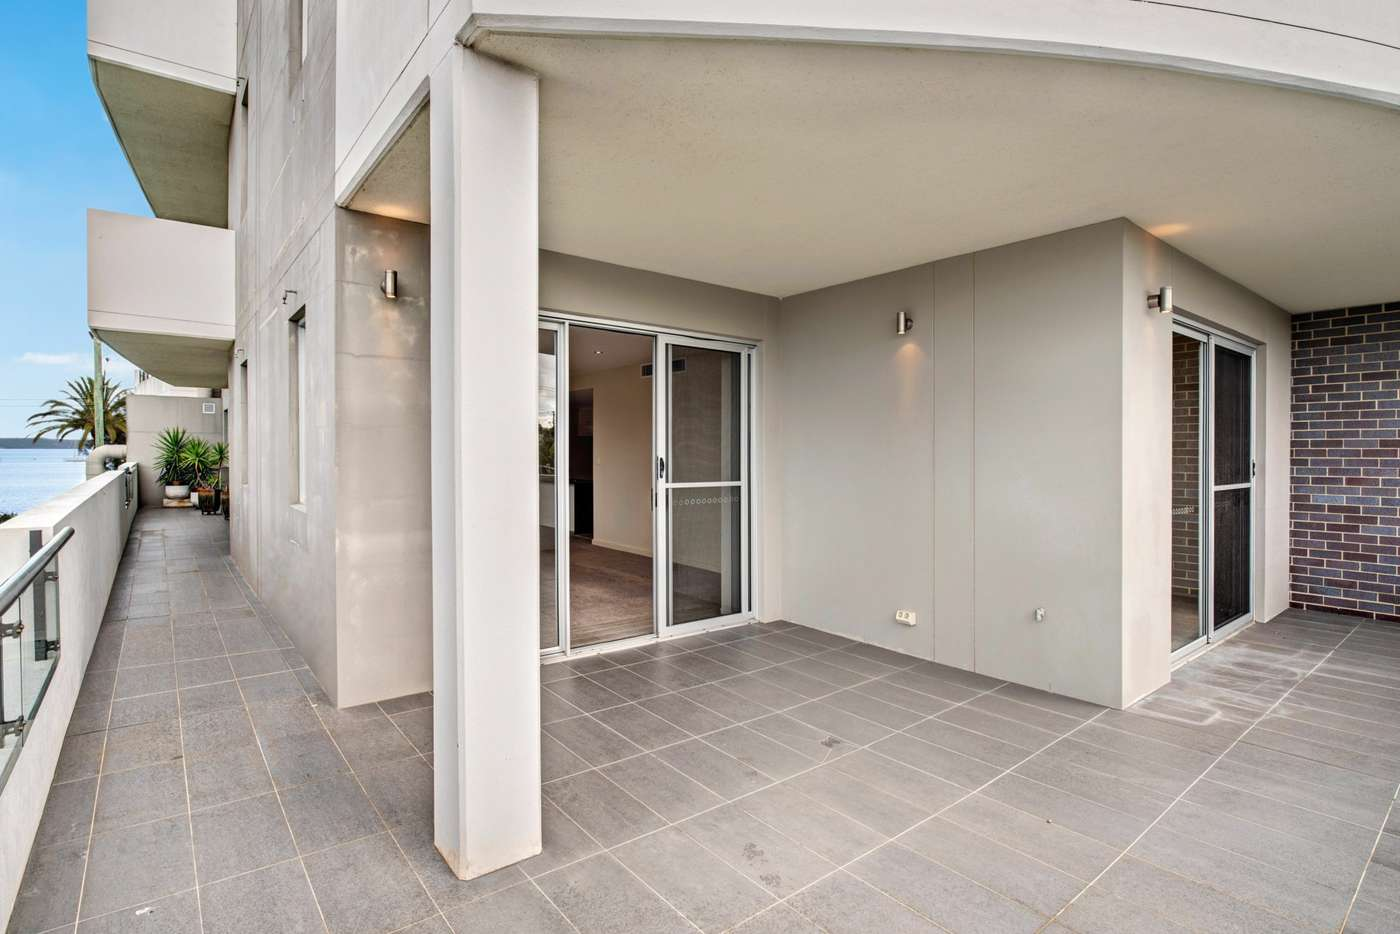 Sixth view of Homely apartment listing, 4/24 Brooks Parade, Belmont NSW 2280